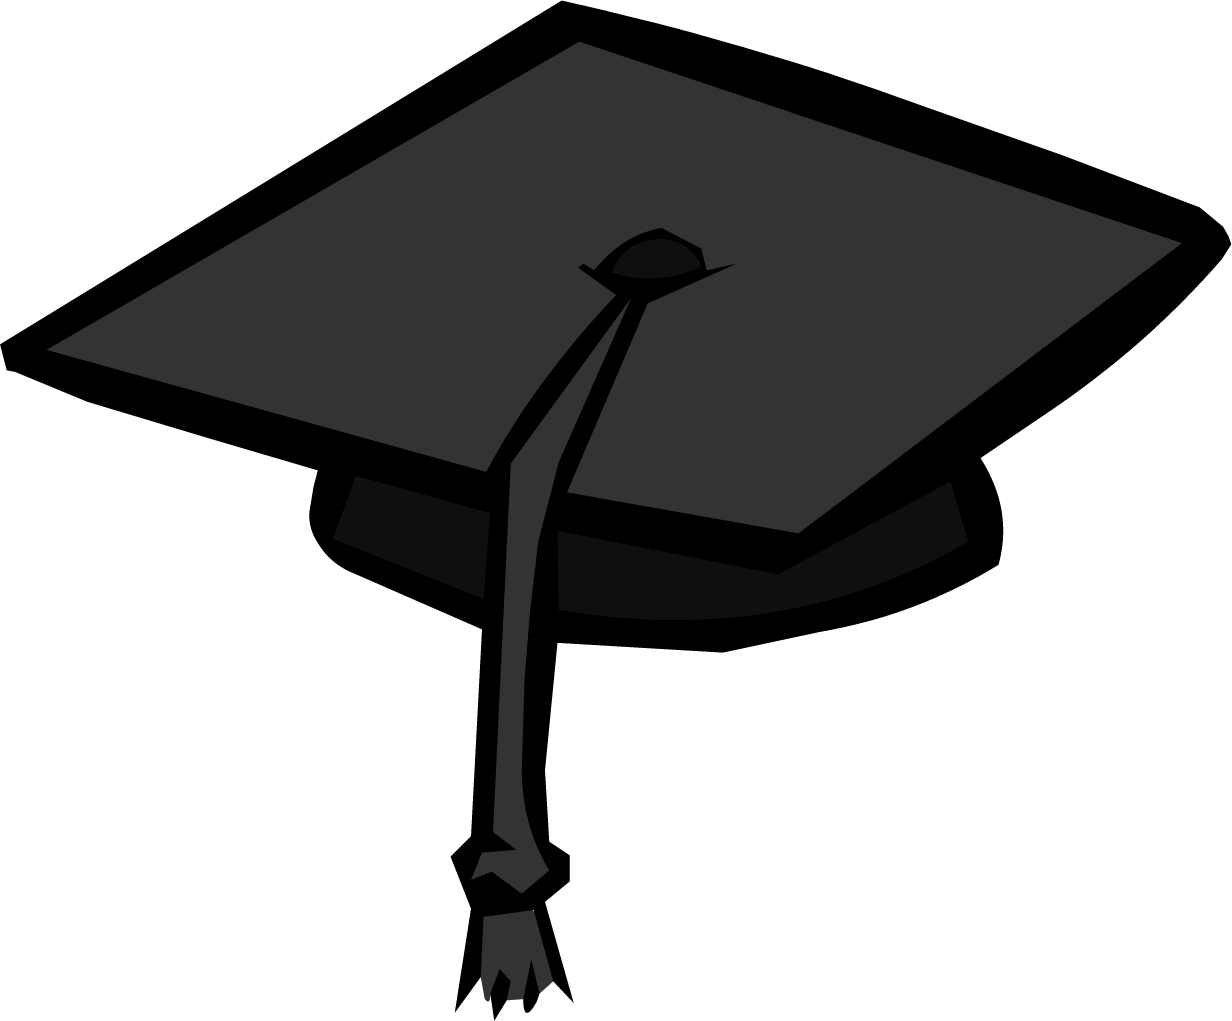 Graduation cap transparent clipart 2